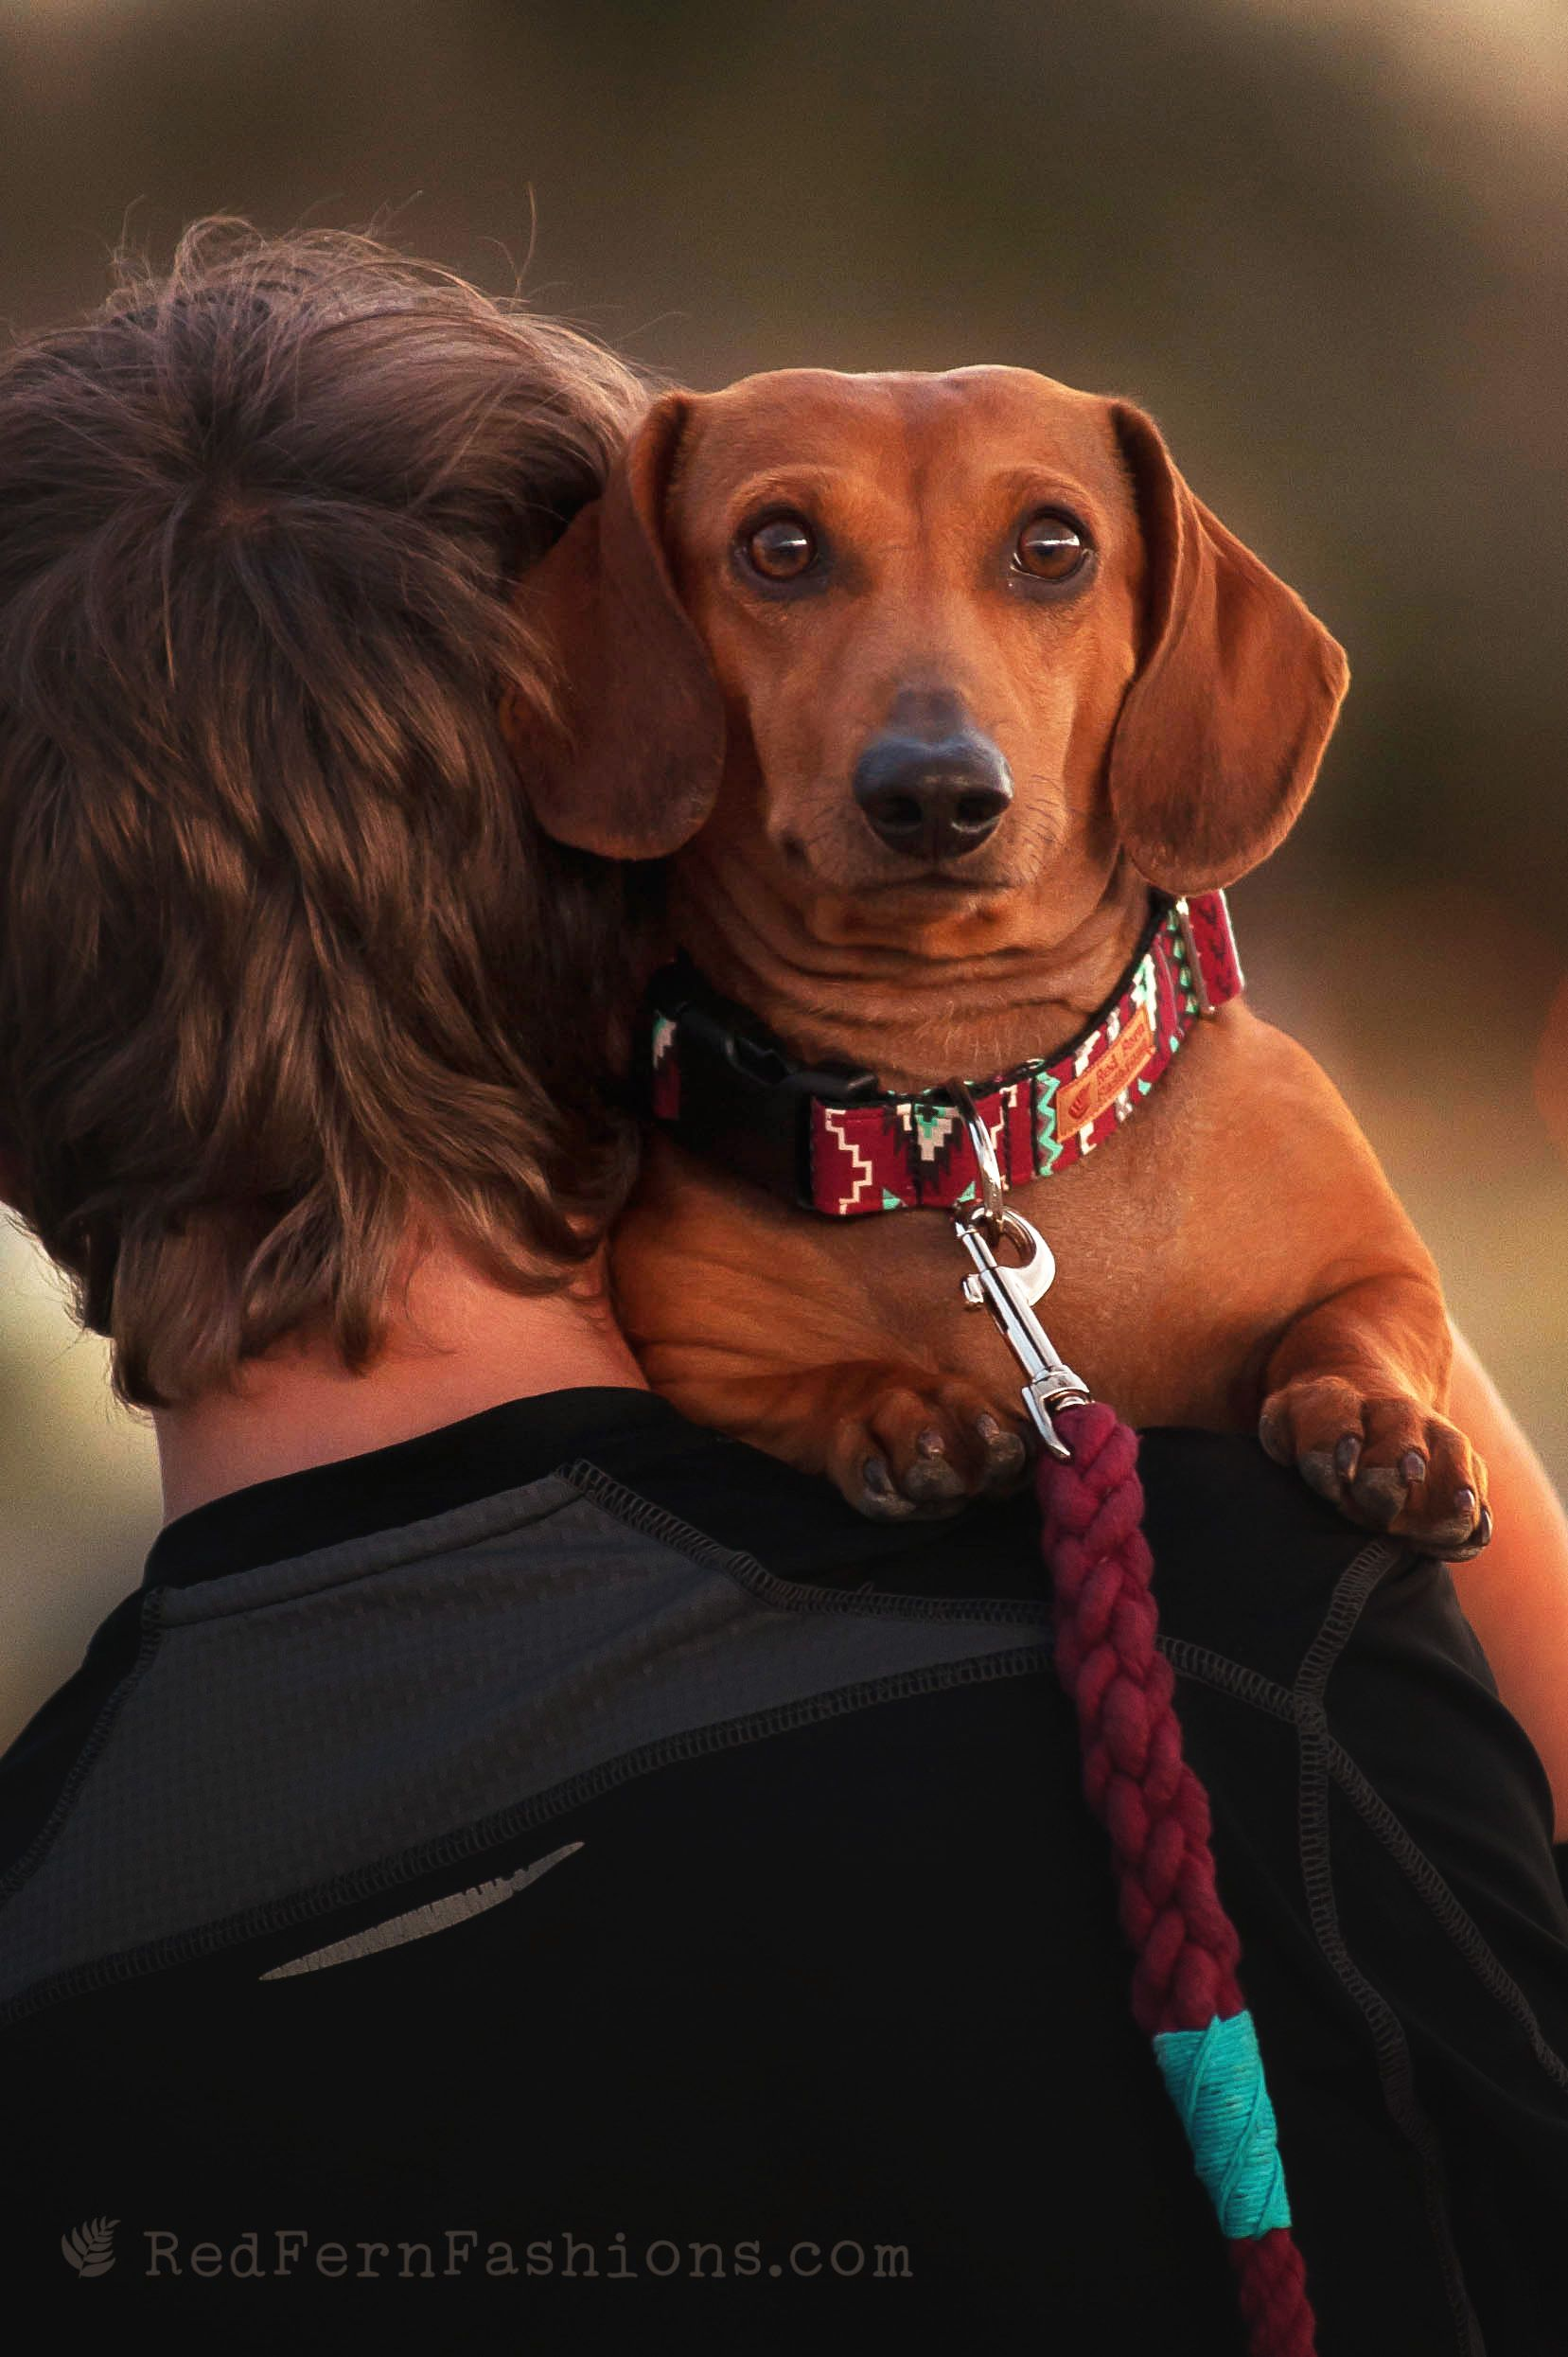 Photo Of A Dachshund With Fabric Collar And Hand Dyed Rope Leash